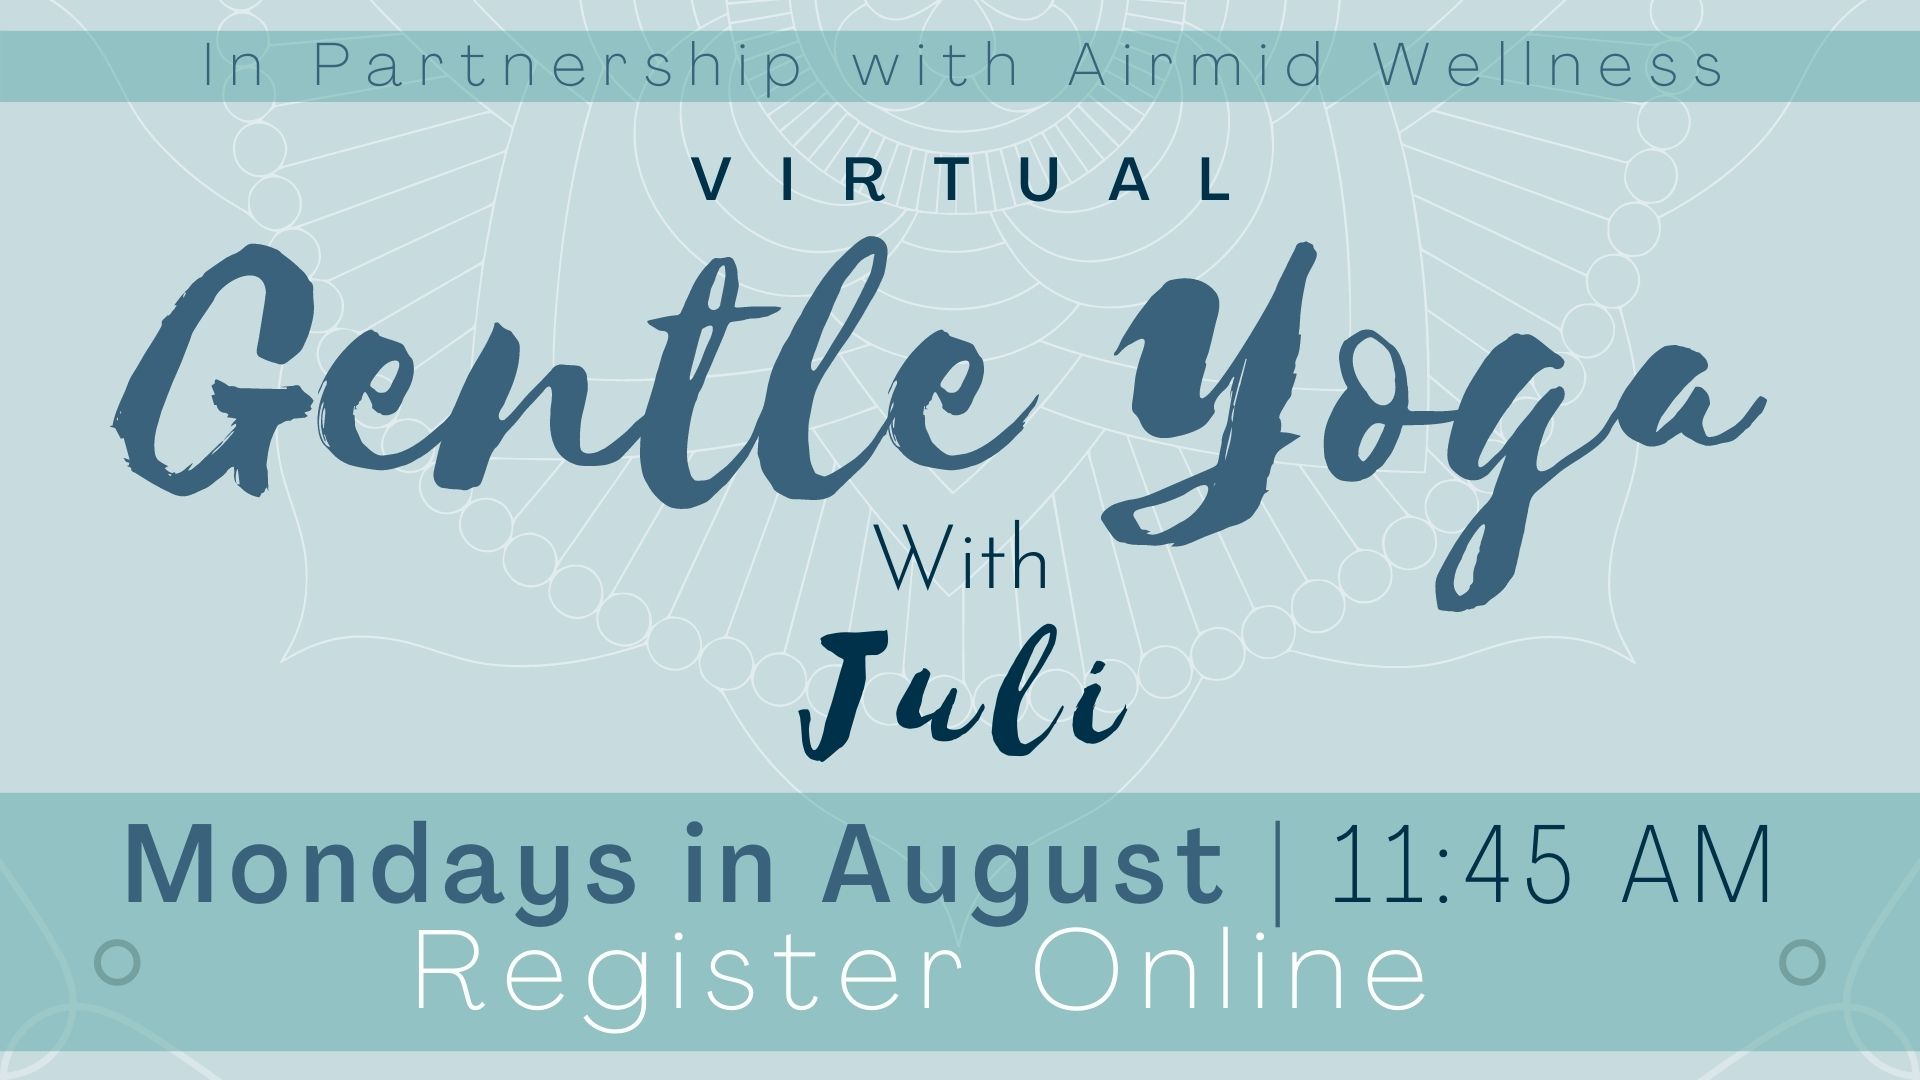 Virtual Gentle Yoga with Juli